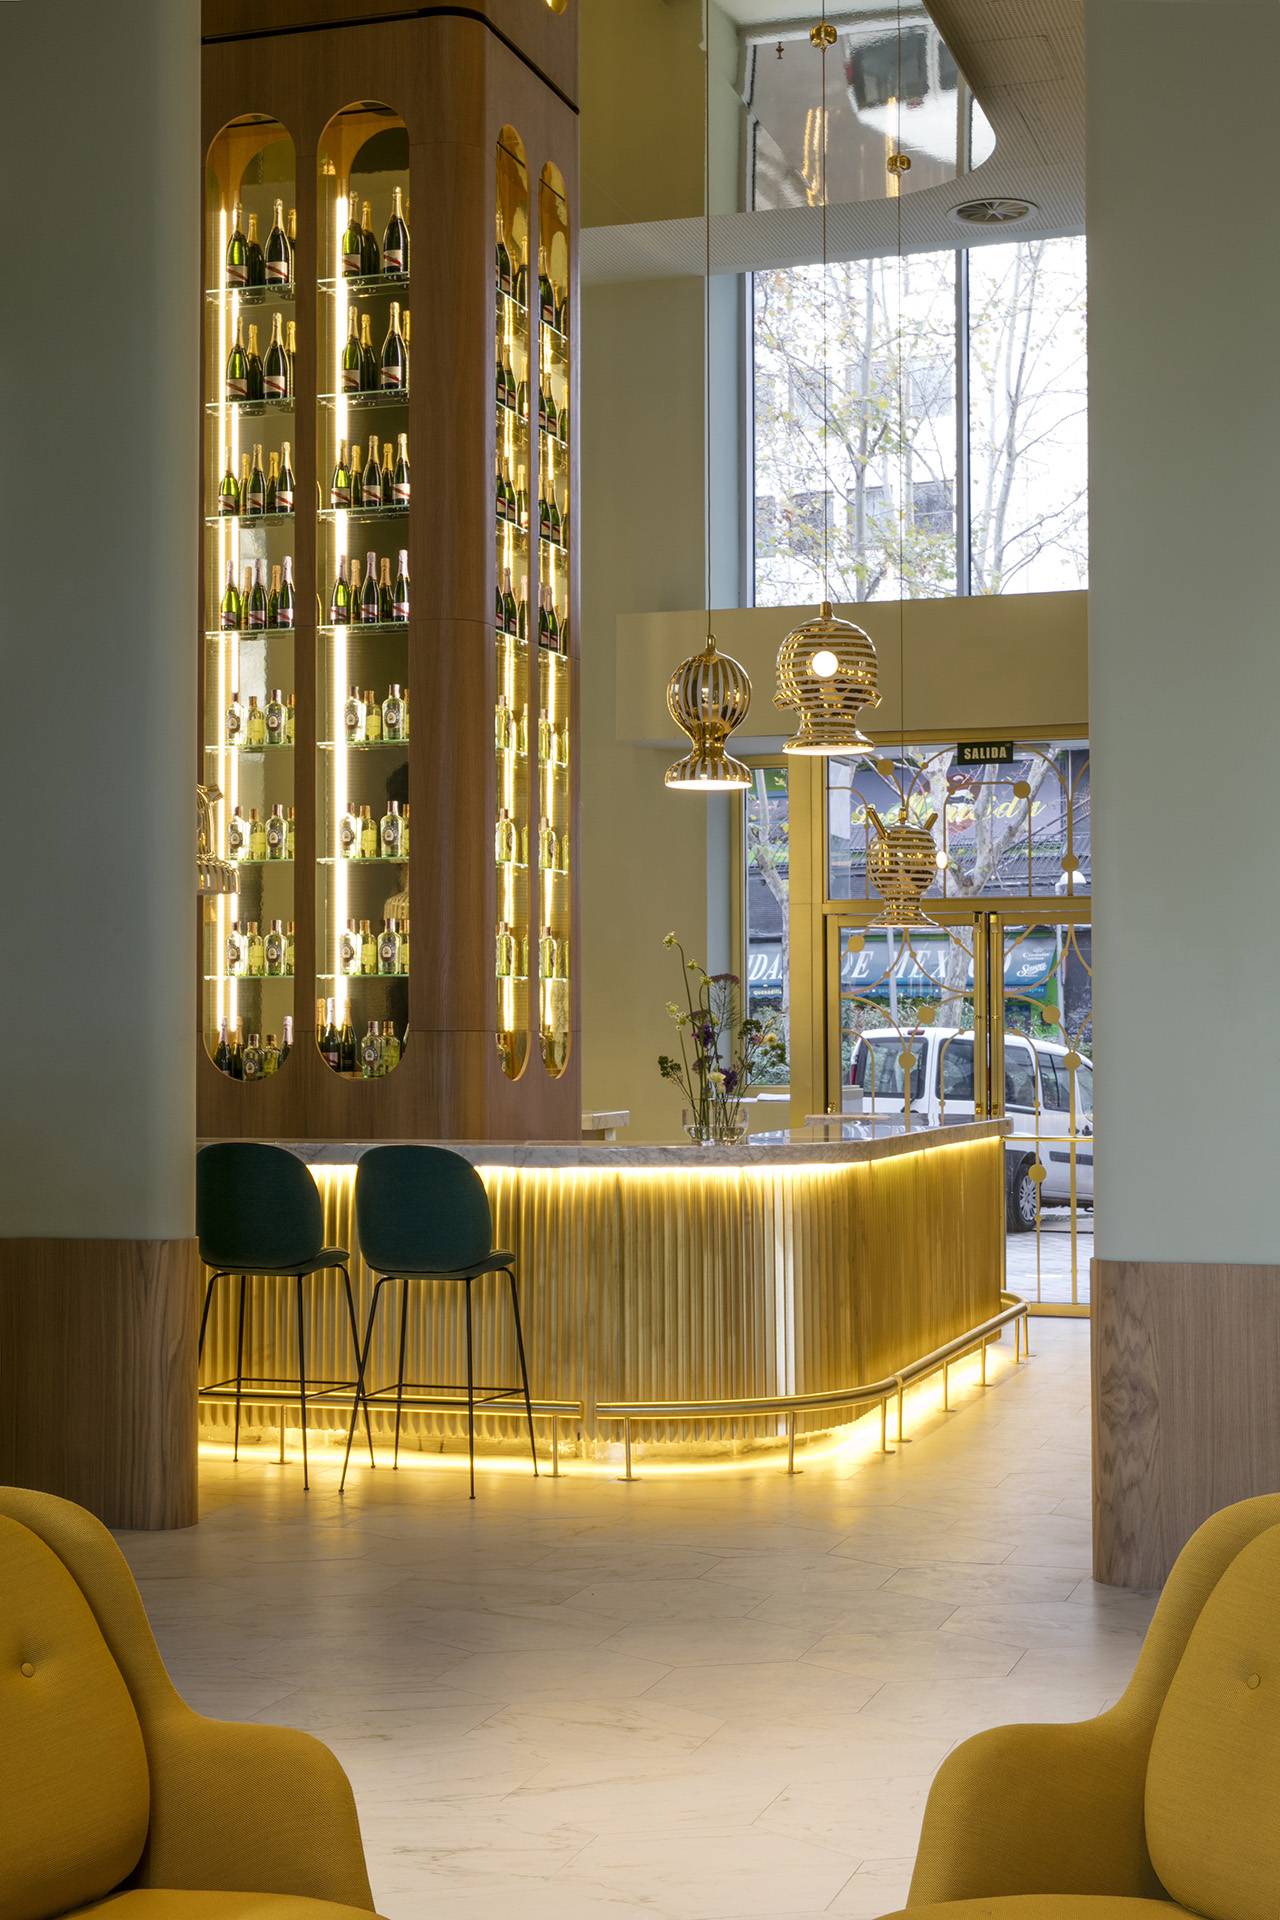 Garra Lobby Bar: Fri armchairs by Fritz Hansen; Beetle stool by Gubi; Ceramic hanging lights special design by Jaime Hayon for Hotel Barceló Torre de Madrid.